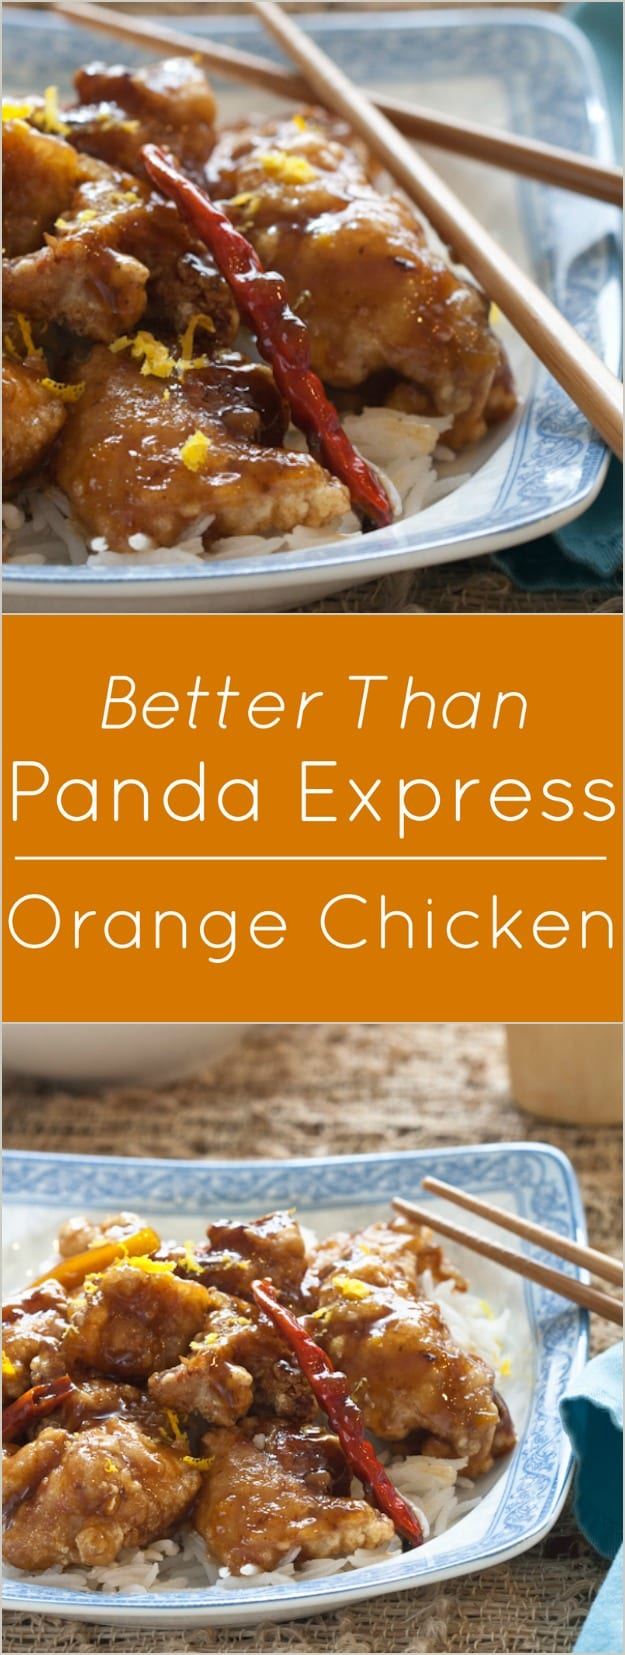 Better than Panda Express Orange Flavored Chicken.